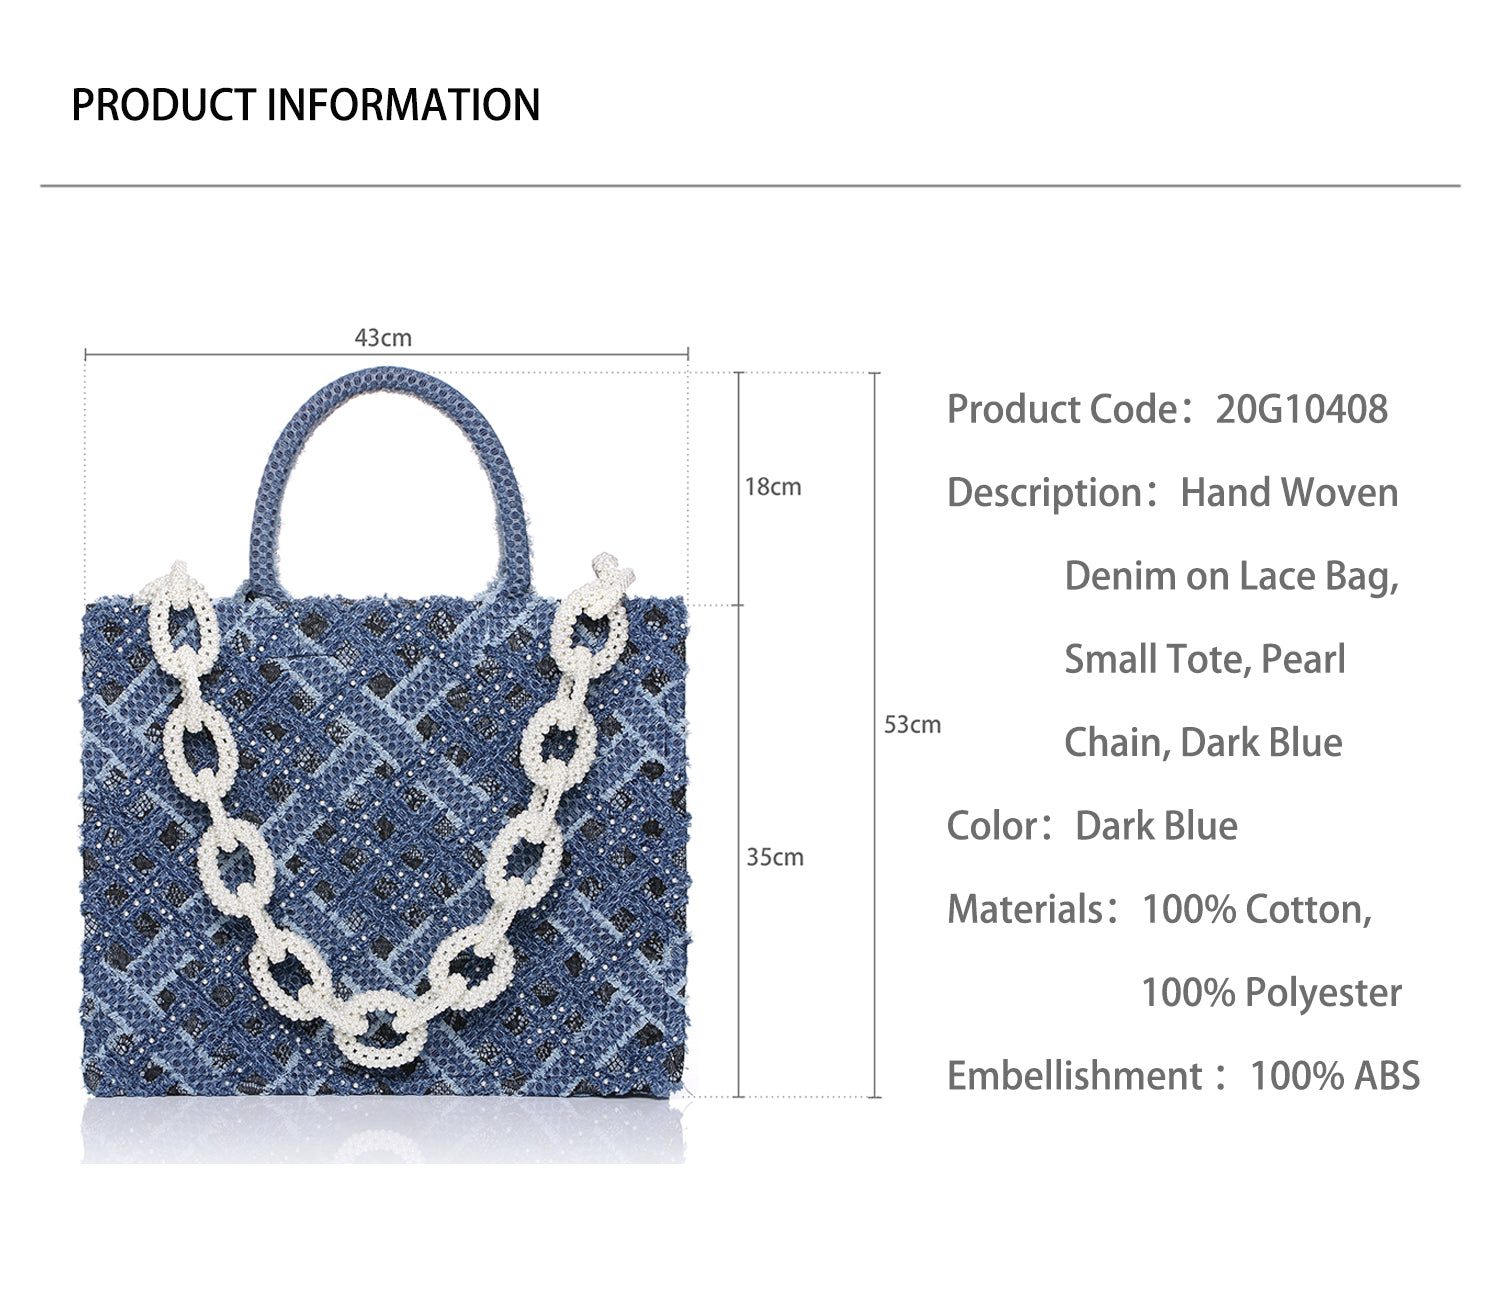 Handwoven Denim on Lace Bag, Small Tote, Pearl Chain, Dark Blue